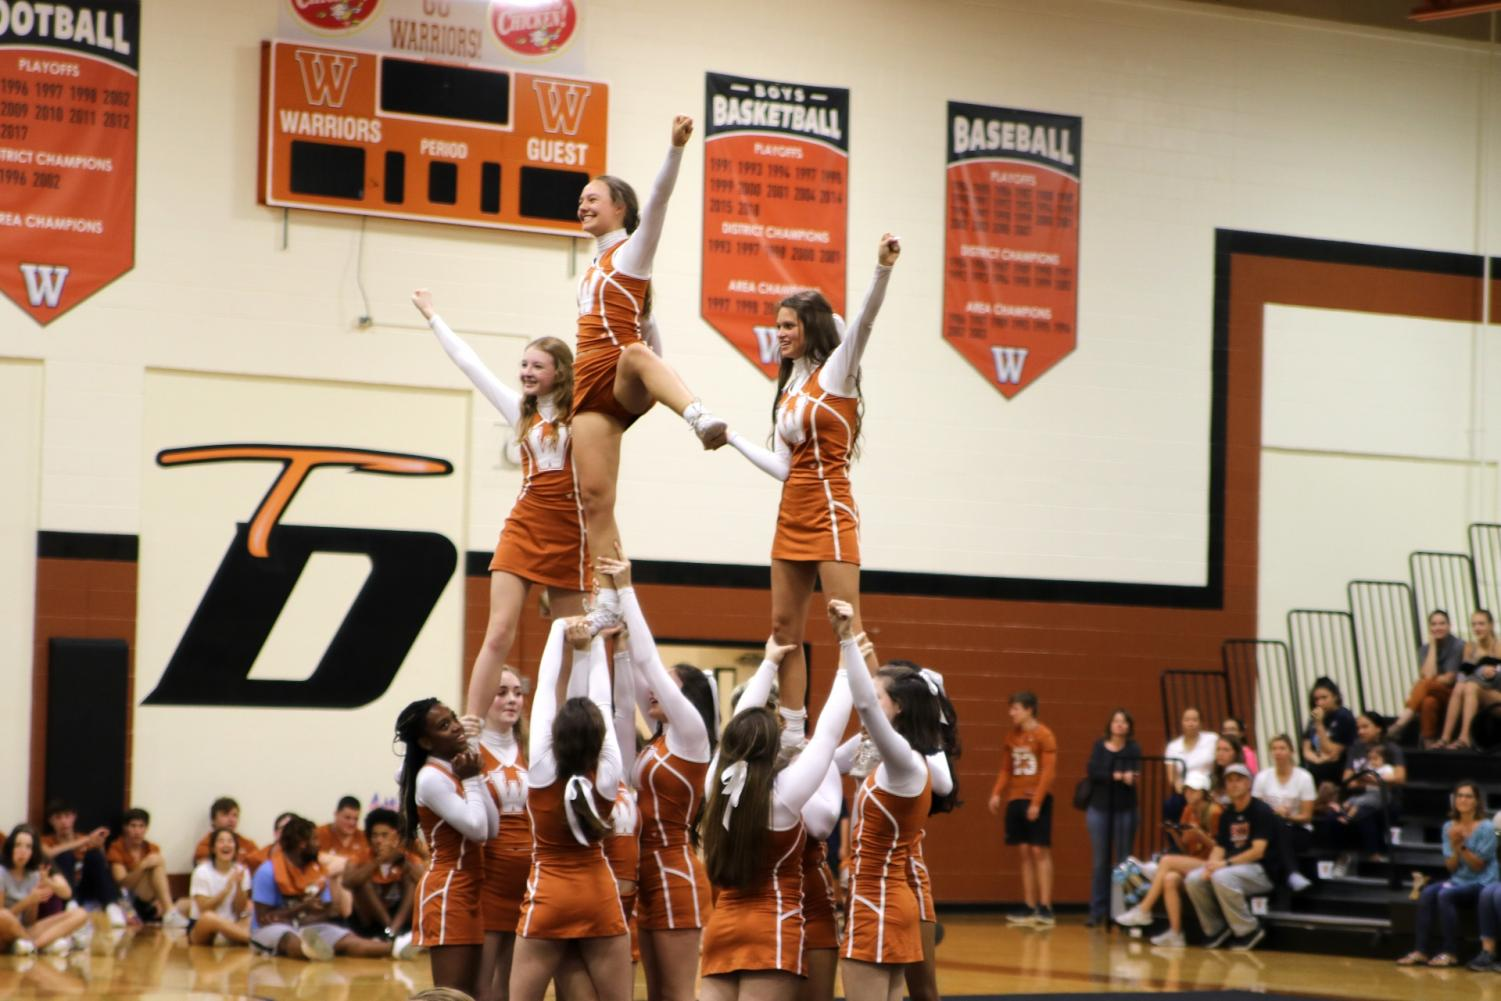 Cheer+team+impresses+the+crowd+with+their+stunts.+The+cheerleaders+truly+worked+together+and+performed+as+a+team%2C+and+performed+gracefully+and+safely.